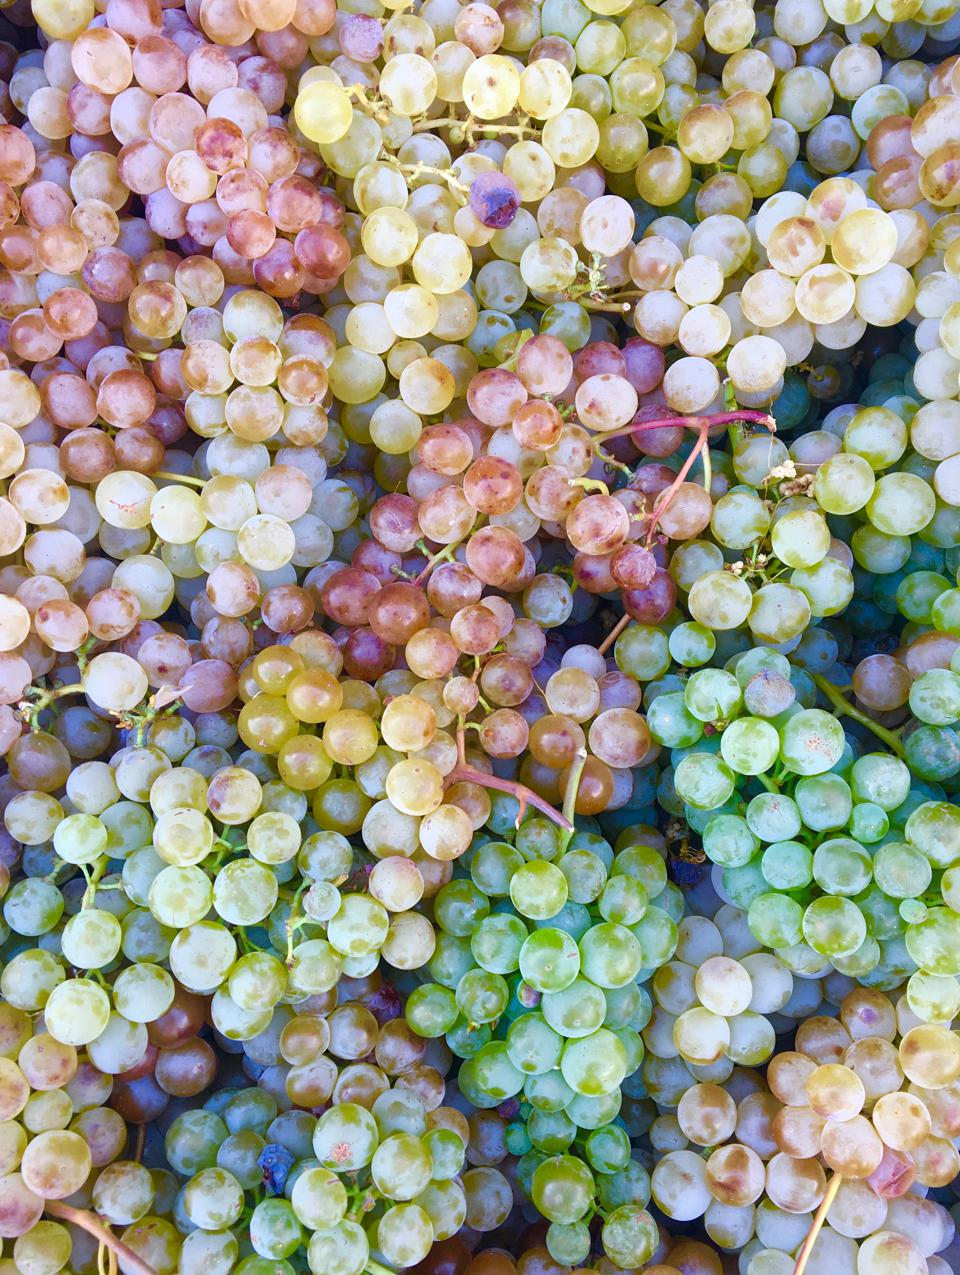 Voskehat grapes at Old Bridge Wine Cellar